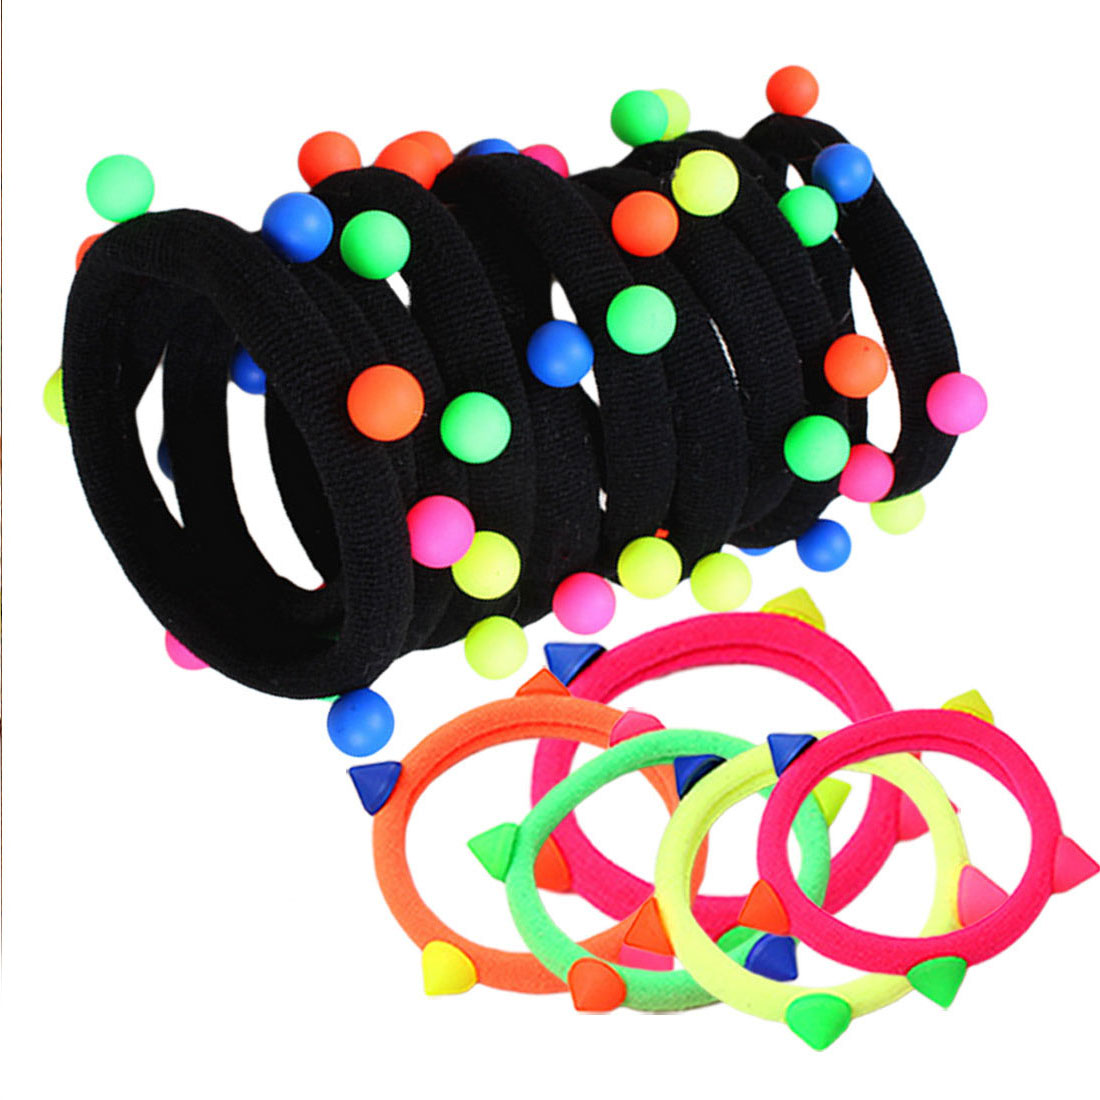 10/20pcs Colorful Pearl Ponytail Holder Elastic Hair Bands Seamless Scrunchie Gum Headwear Ropes Hair Accessories For Girls